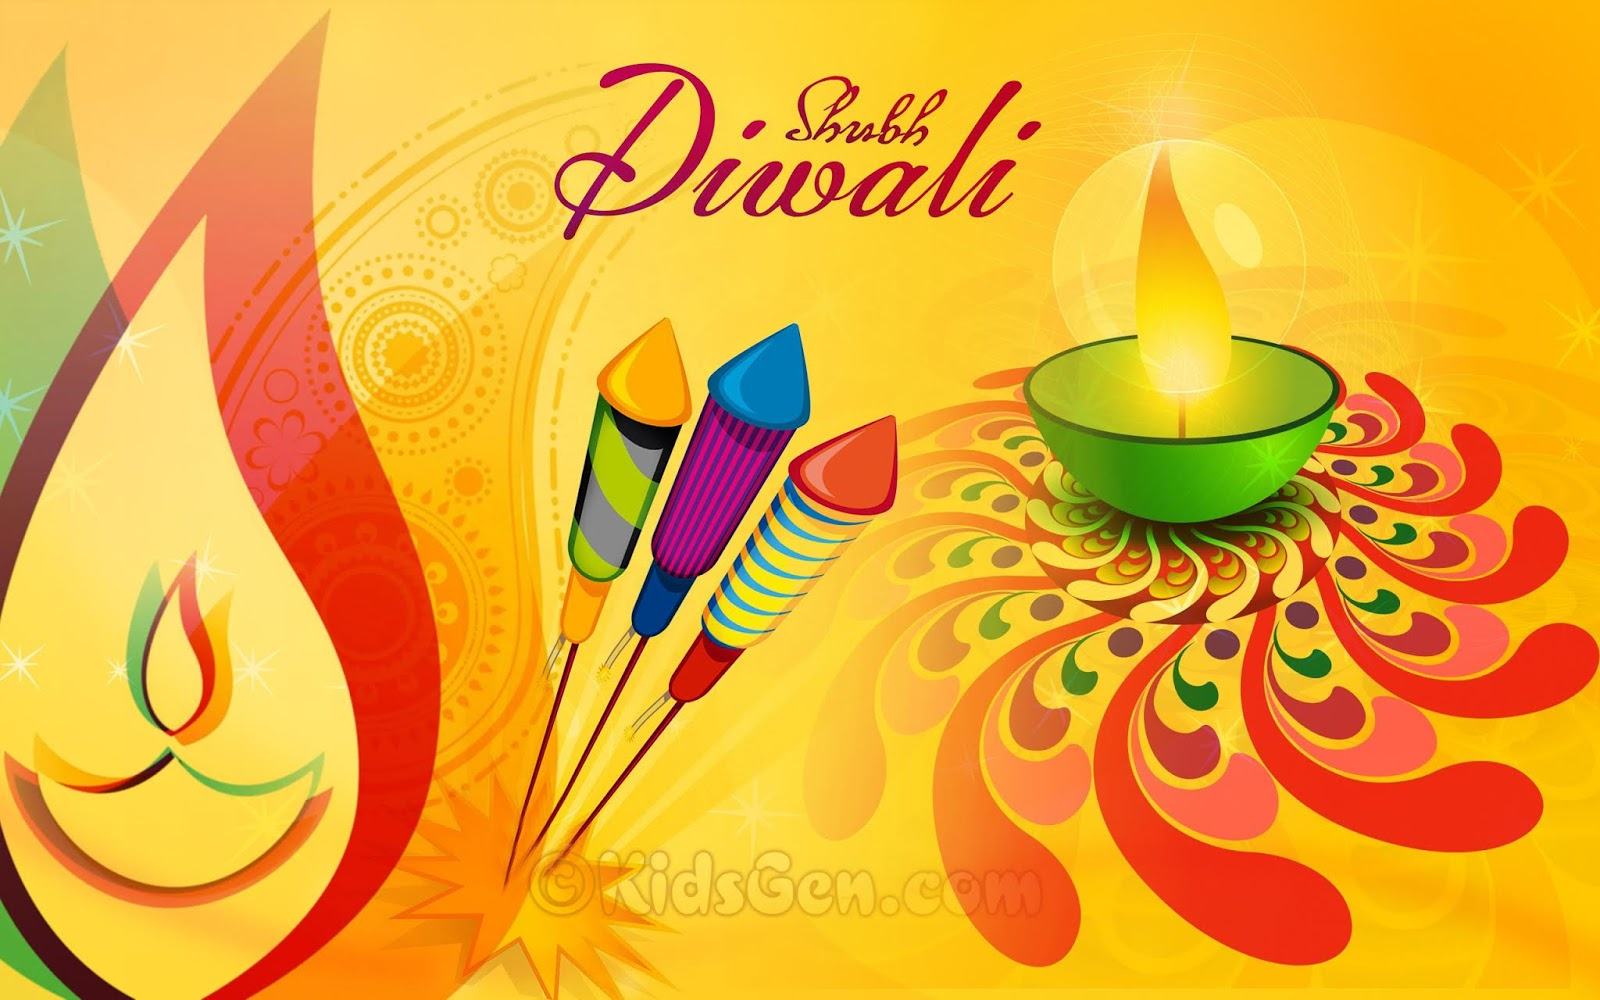 Subh Diwali Photo